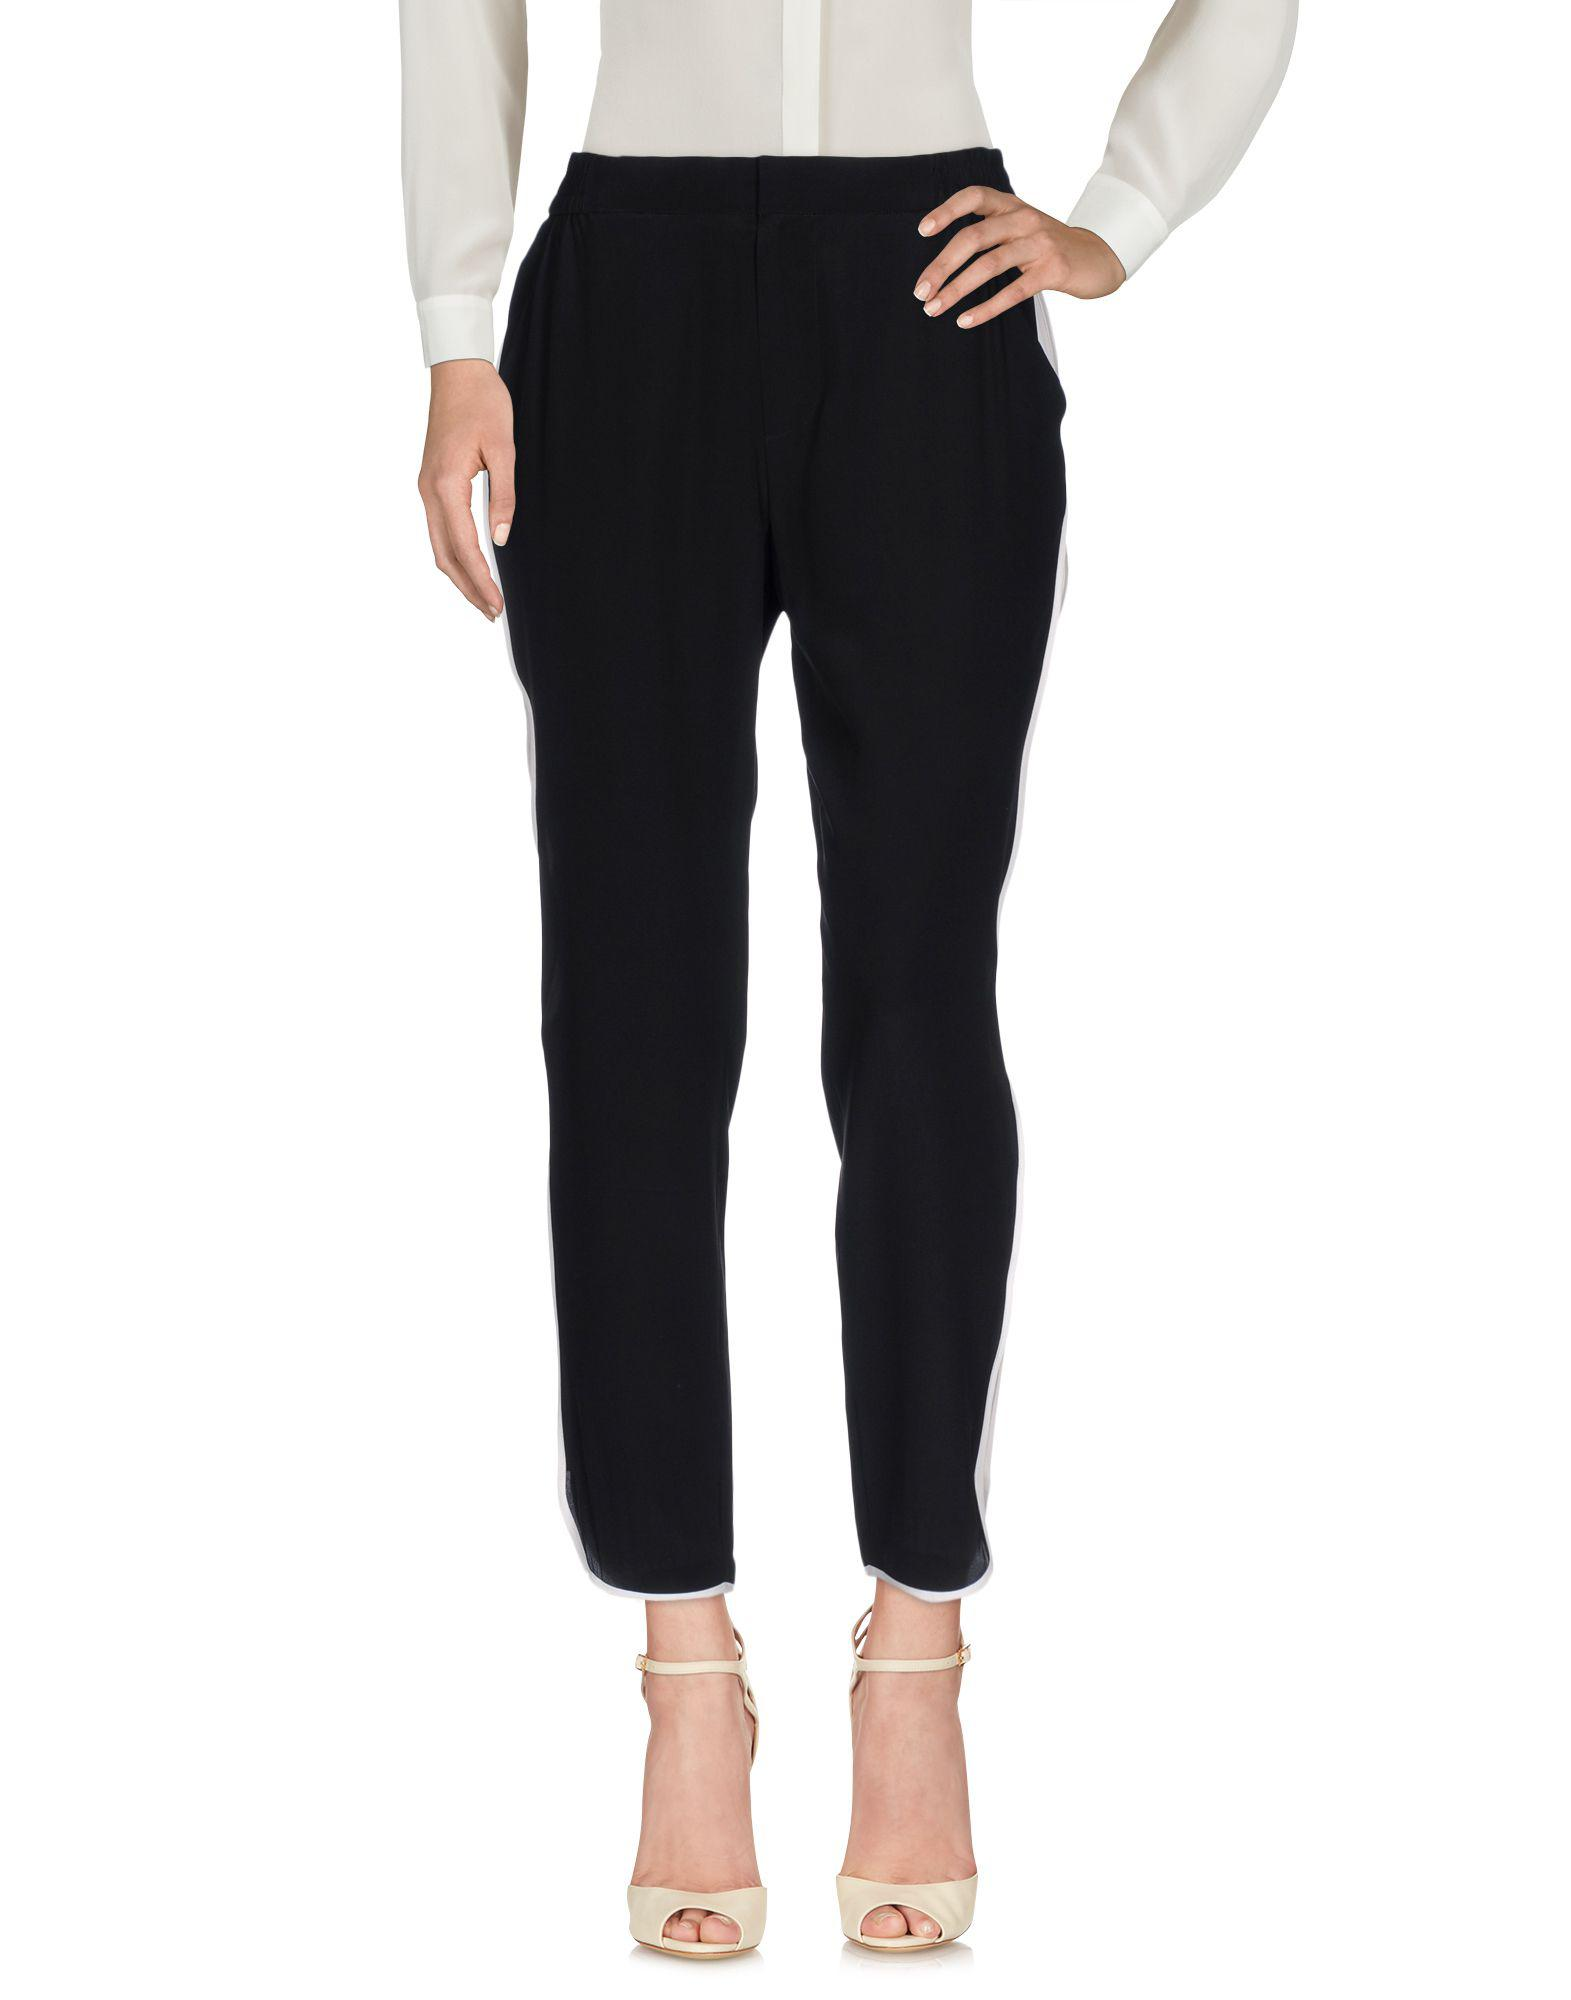 TROUSERS - 3/4-length trousers Raoul pXtWv8